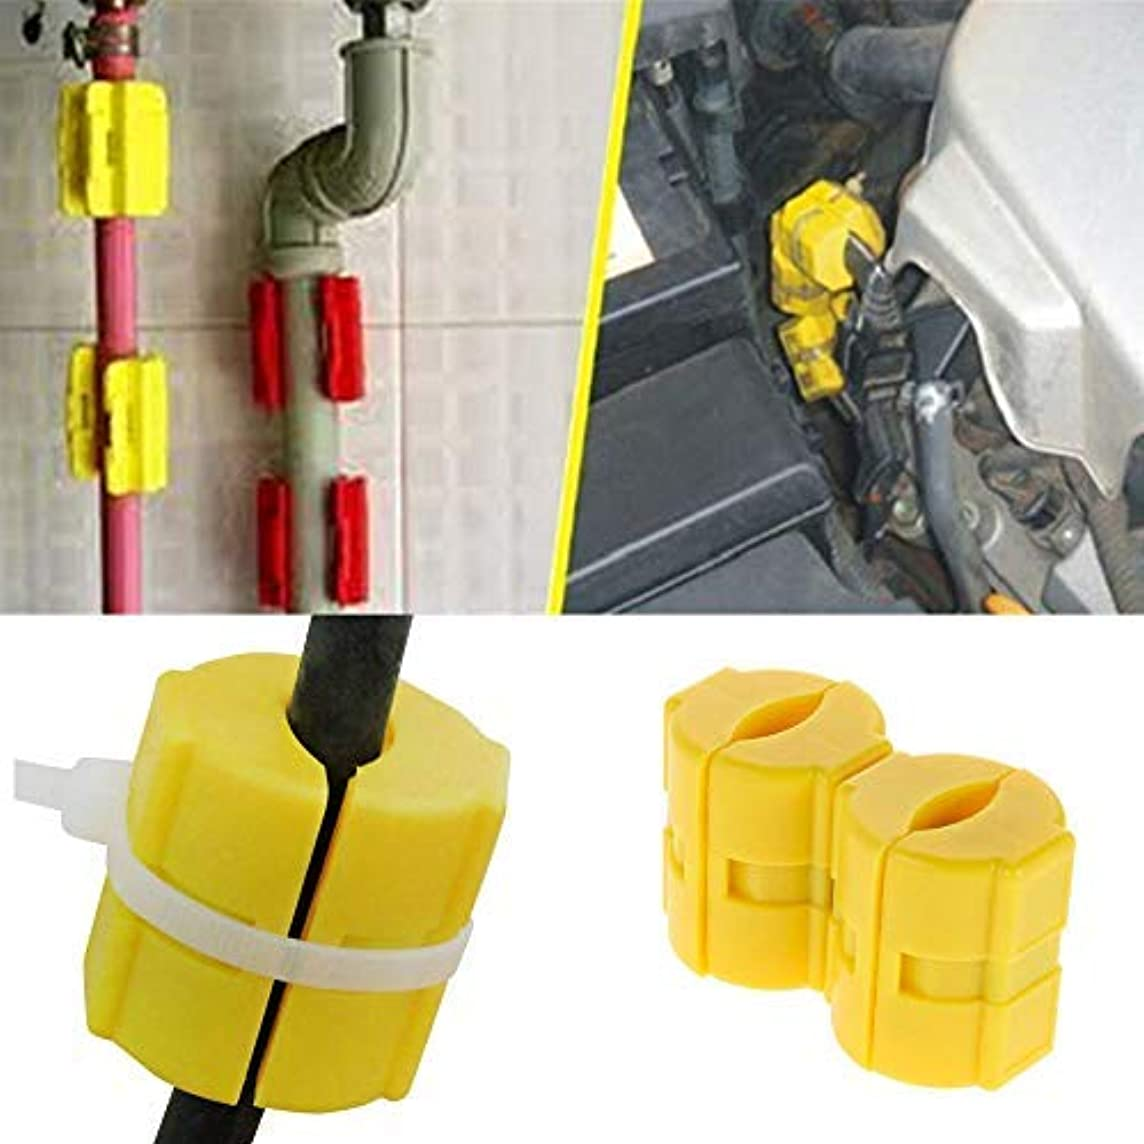 Vovomay 2 Pcs Car/Truck Fuel Saver Gas Savings Magnetic Technology Line Conditioner, Automobile Magnetic Fuel Saver